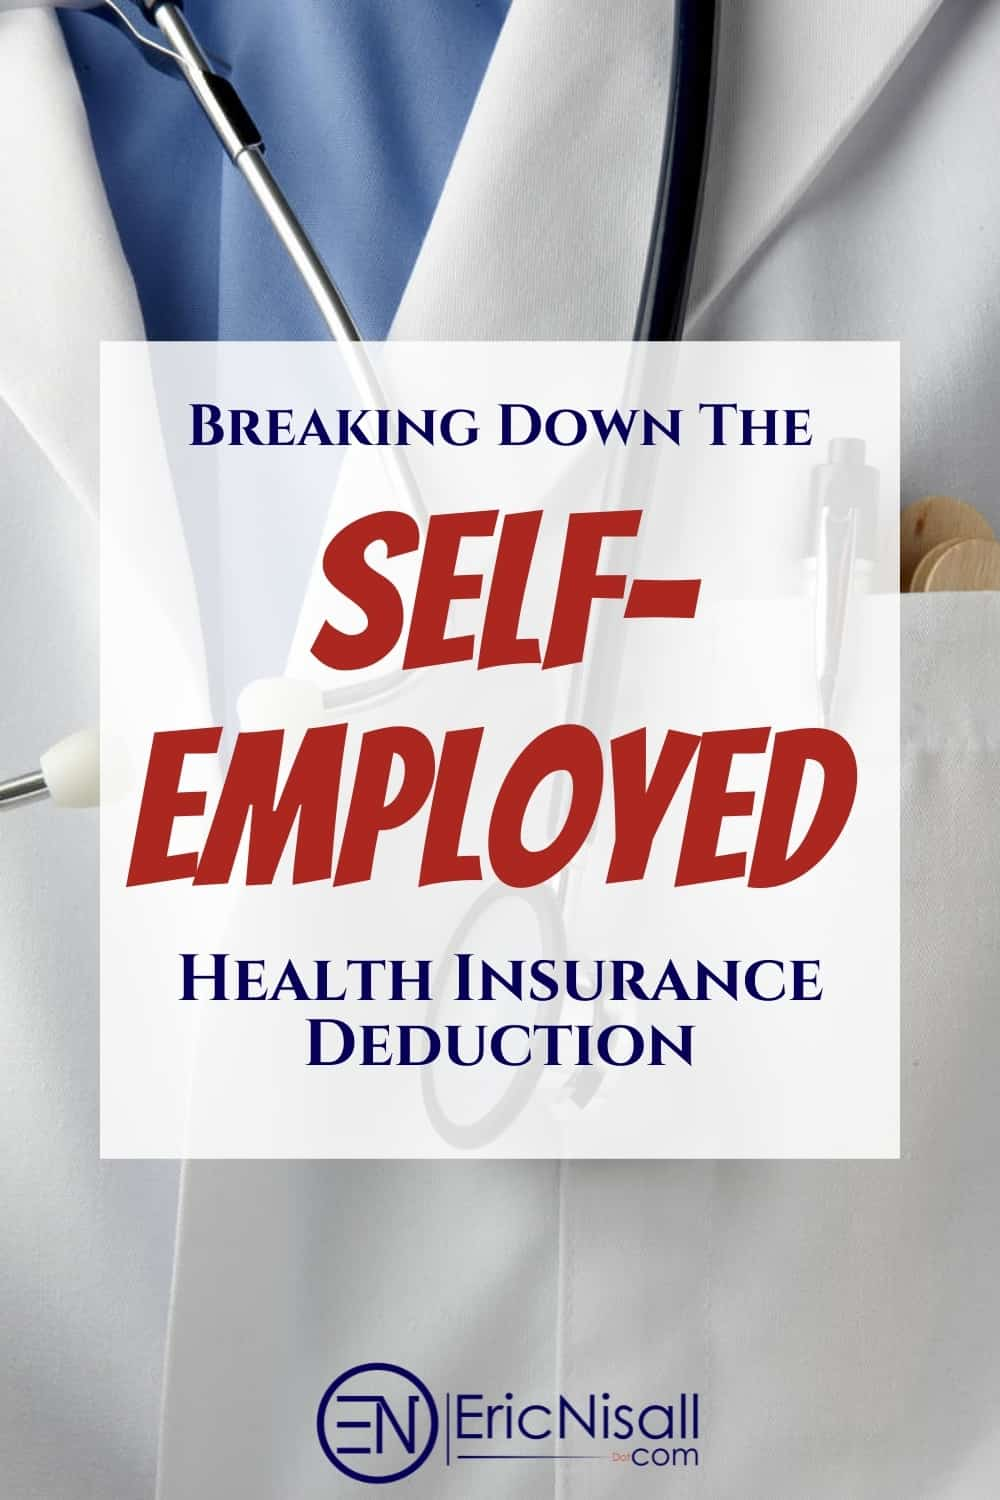 Health insurance is confusing as all get-out! It's worse when you're self-employed. And if you're married...Fuggedaboutit! Let me clear up the Self-Employed Health Insurance Deduction a bit. #healthinsurance #healthcare #selfcare #taxdeductions #smallbusiness #wellness #health via @ericnisall